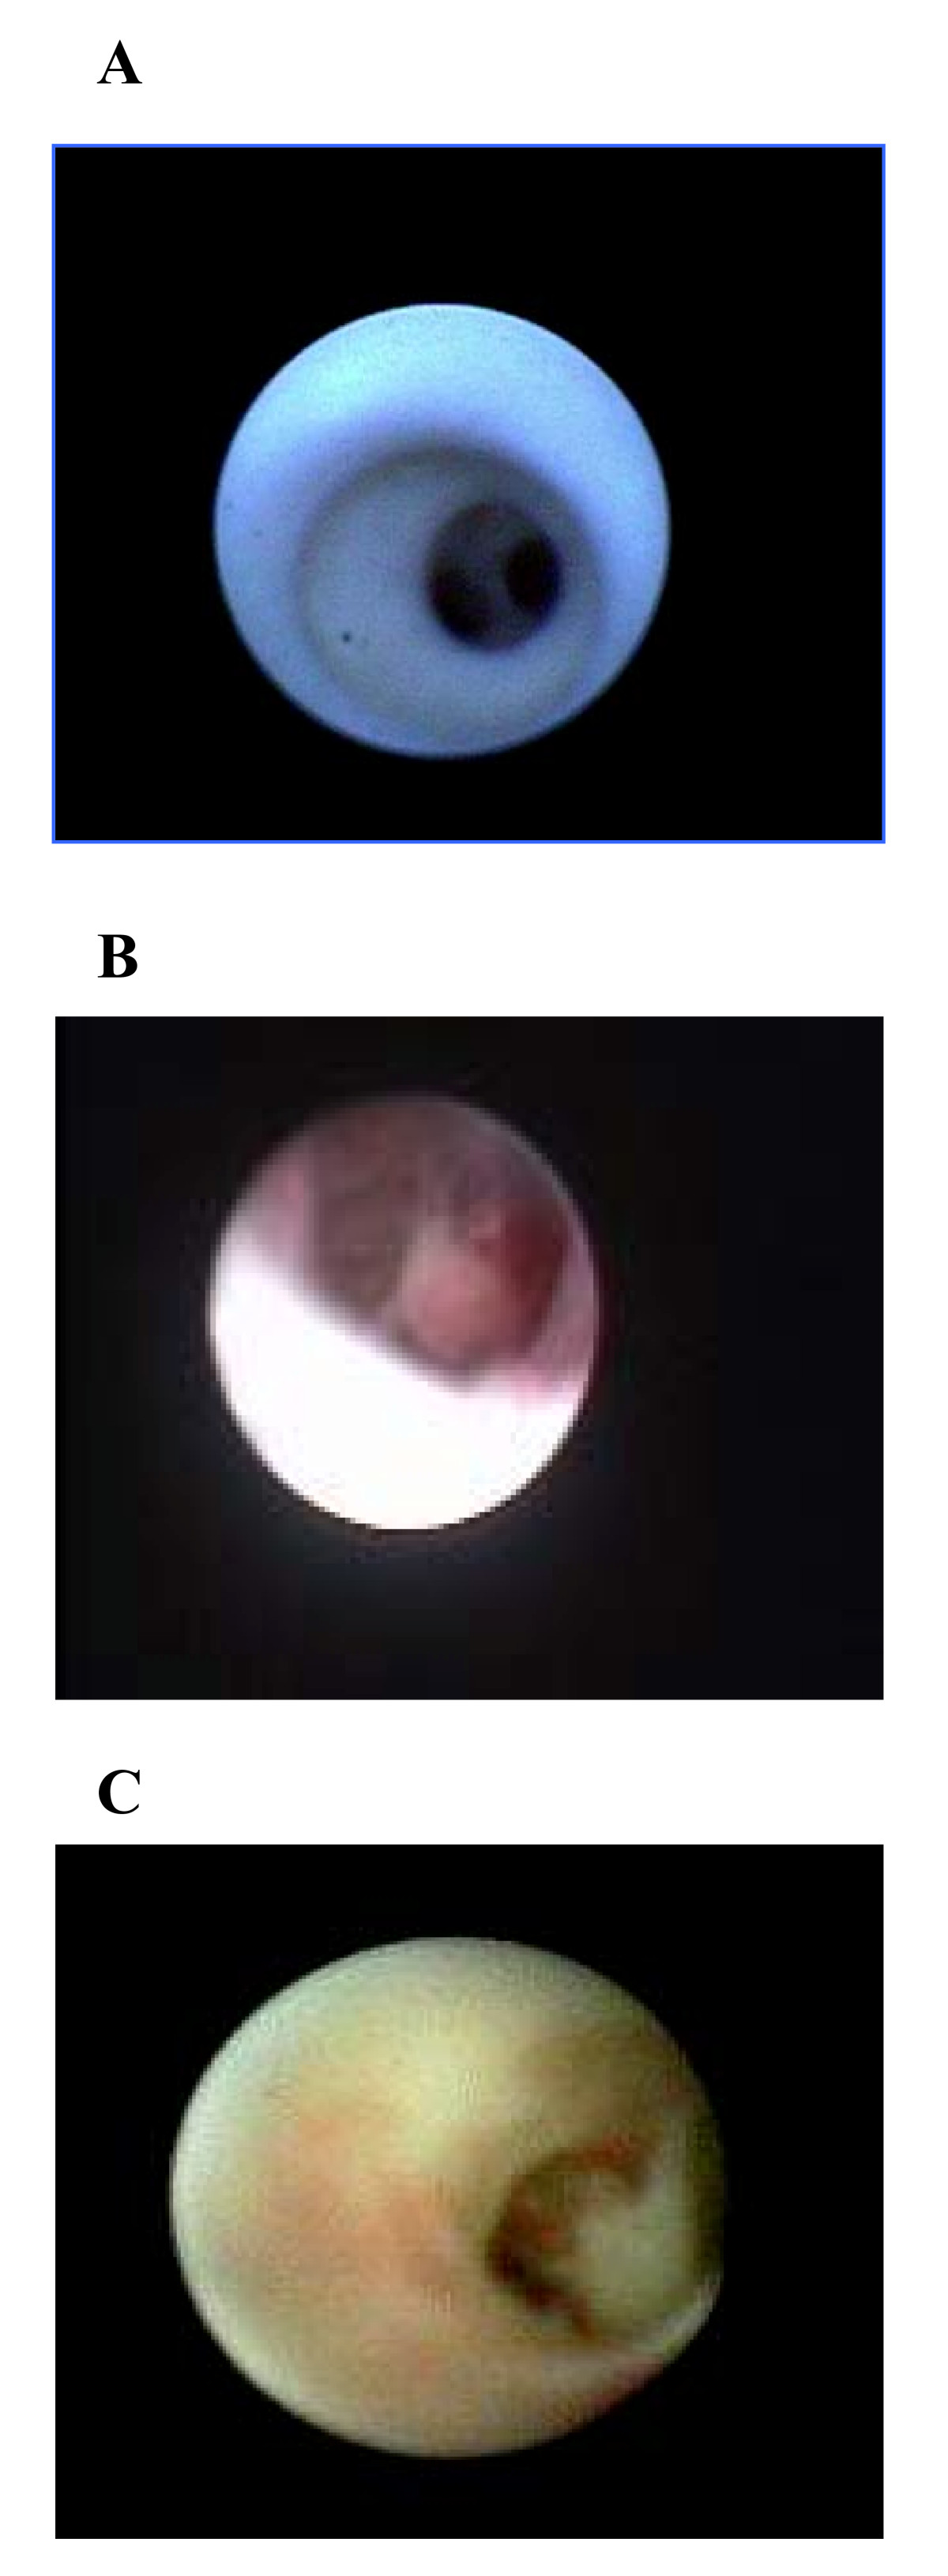 https://static-content.springer.com/image/art%3A10.1186%2F1477-7800-3-16/MediaObjects/12956_2006_Article_47_Fig2_HTML.jpg